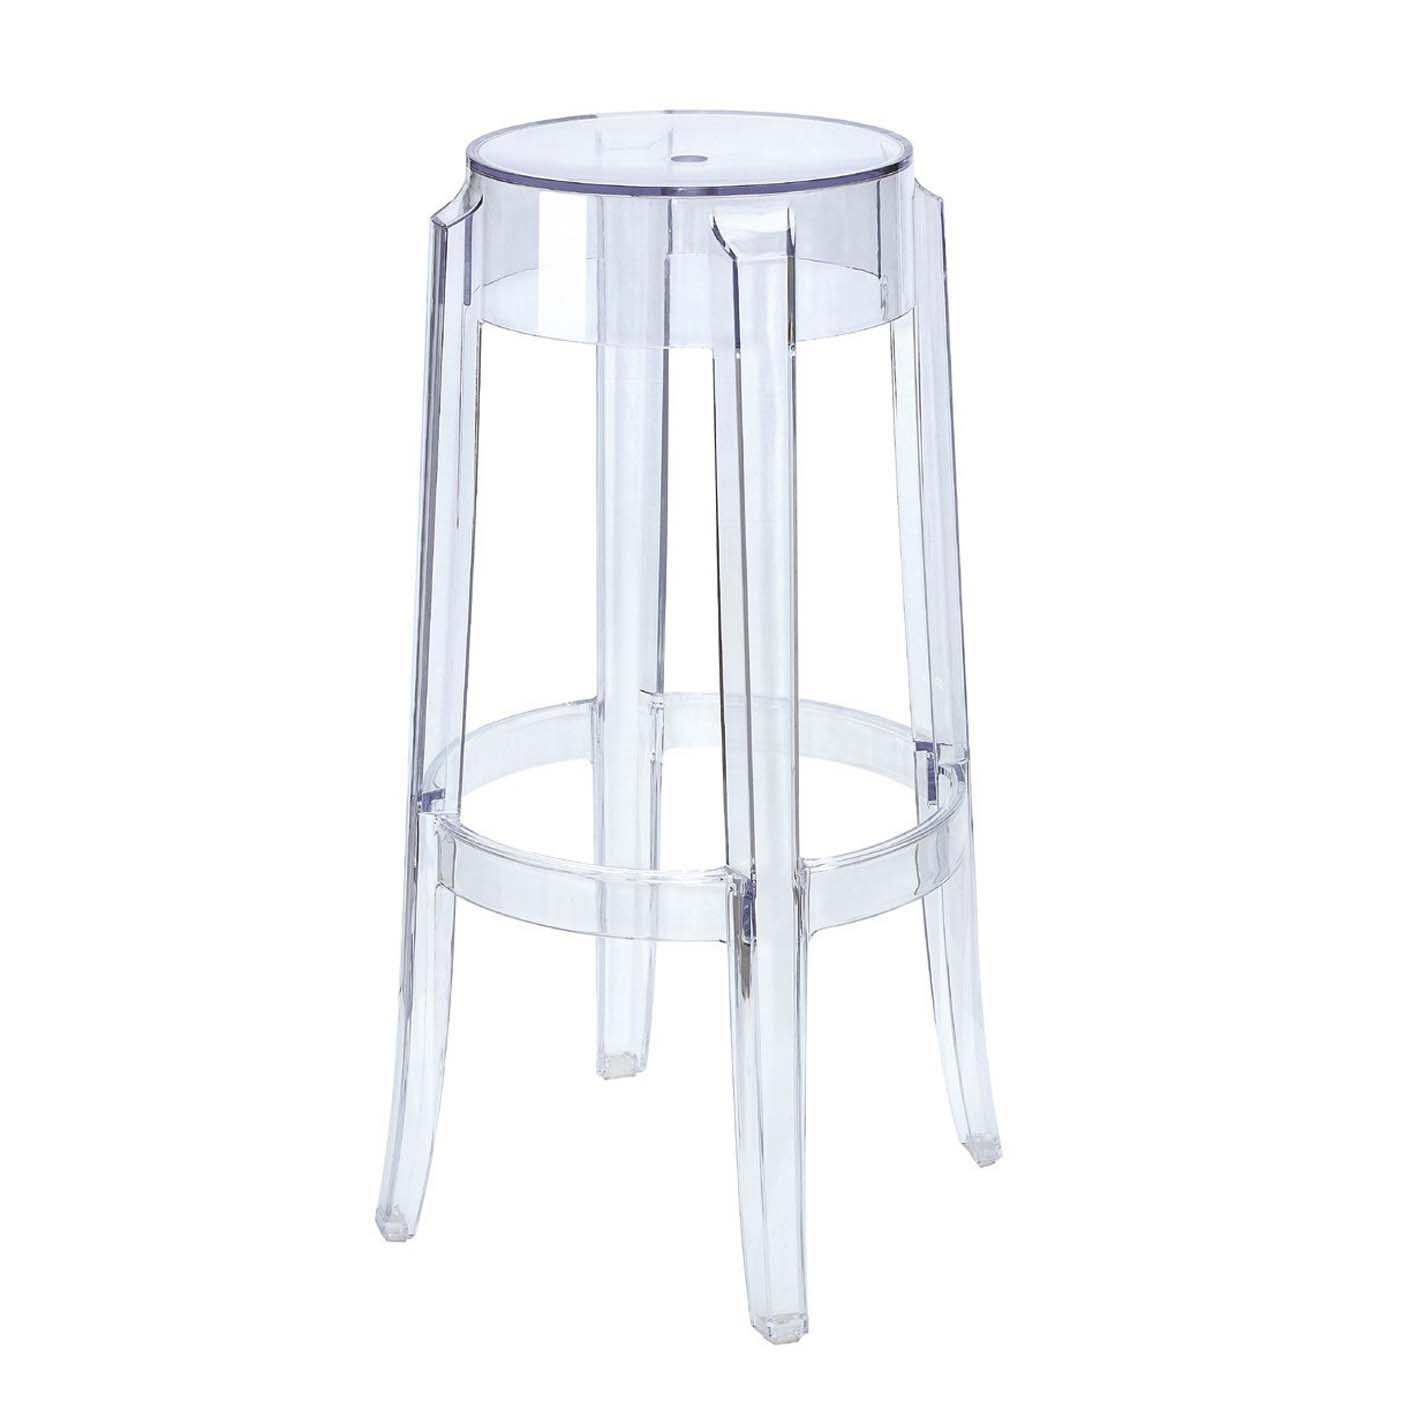 ghost bar stools  acrylic bar stools - pca